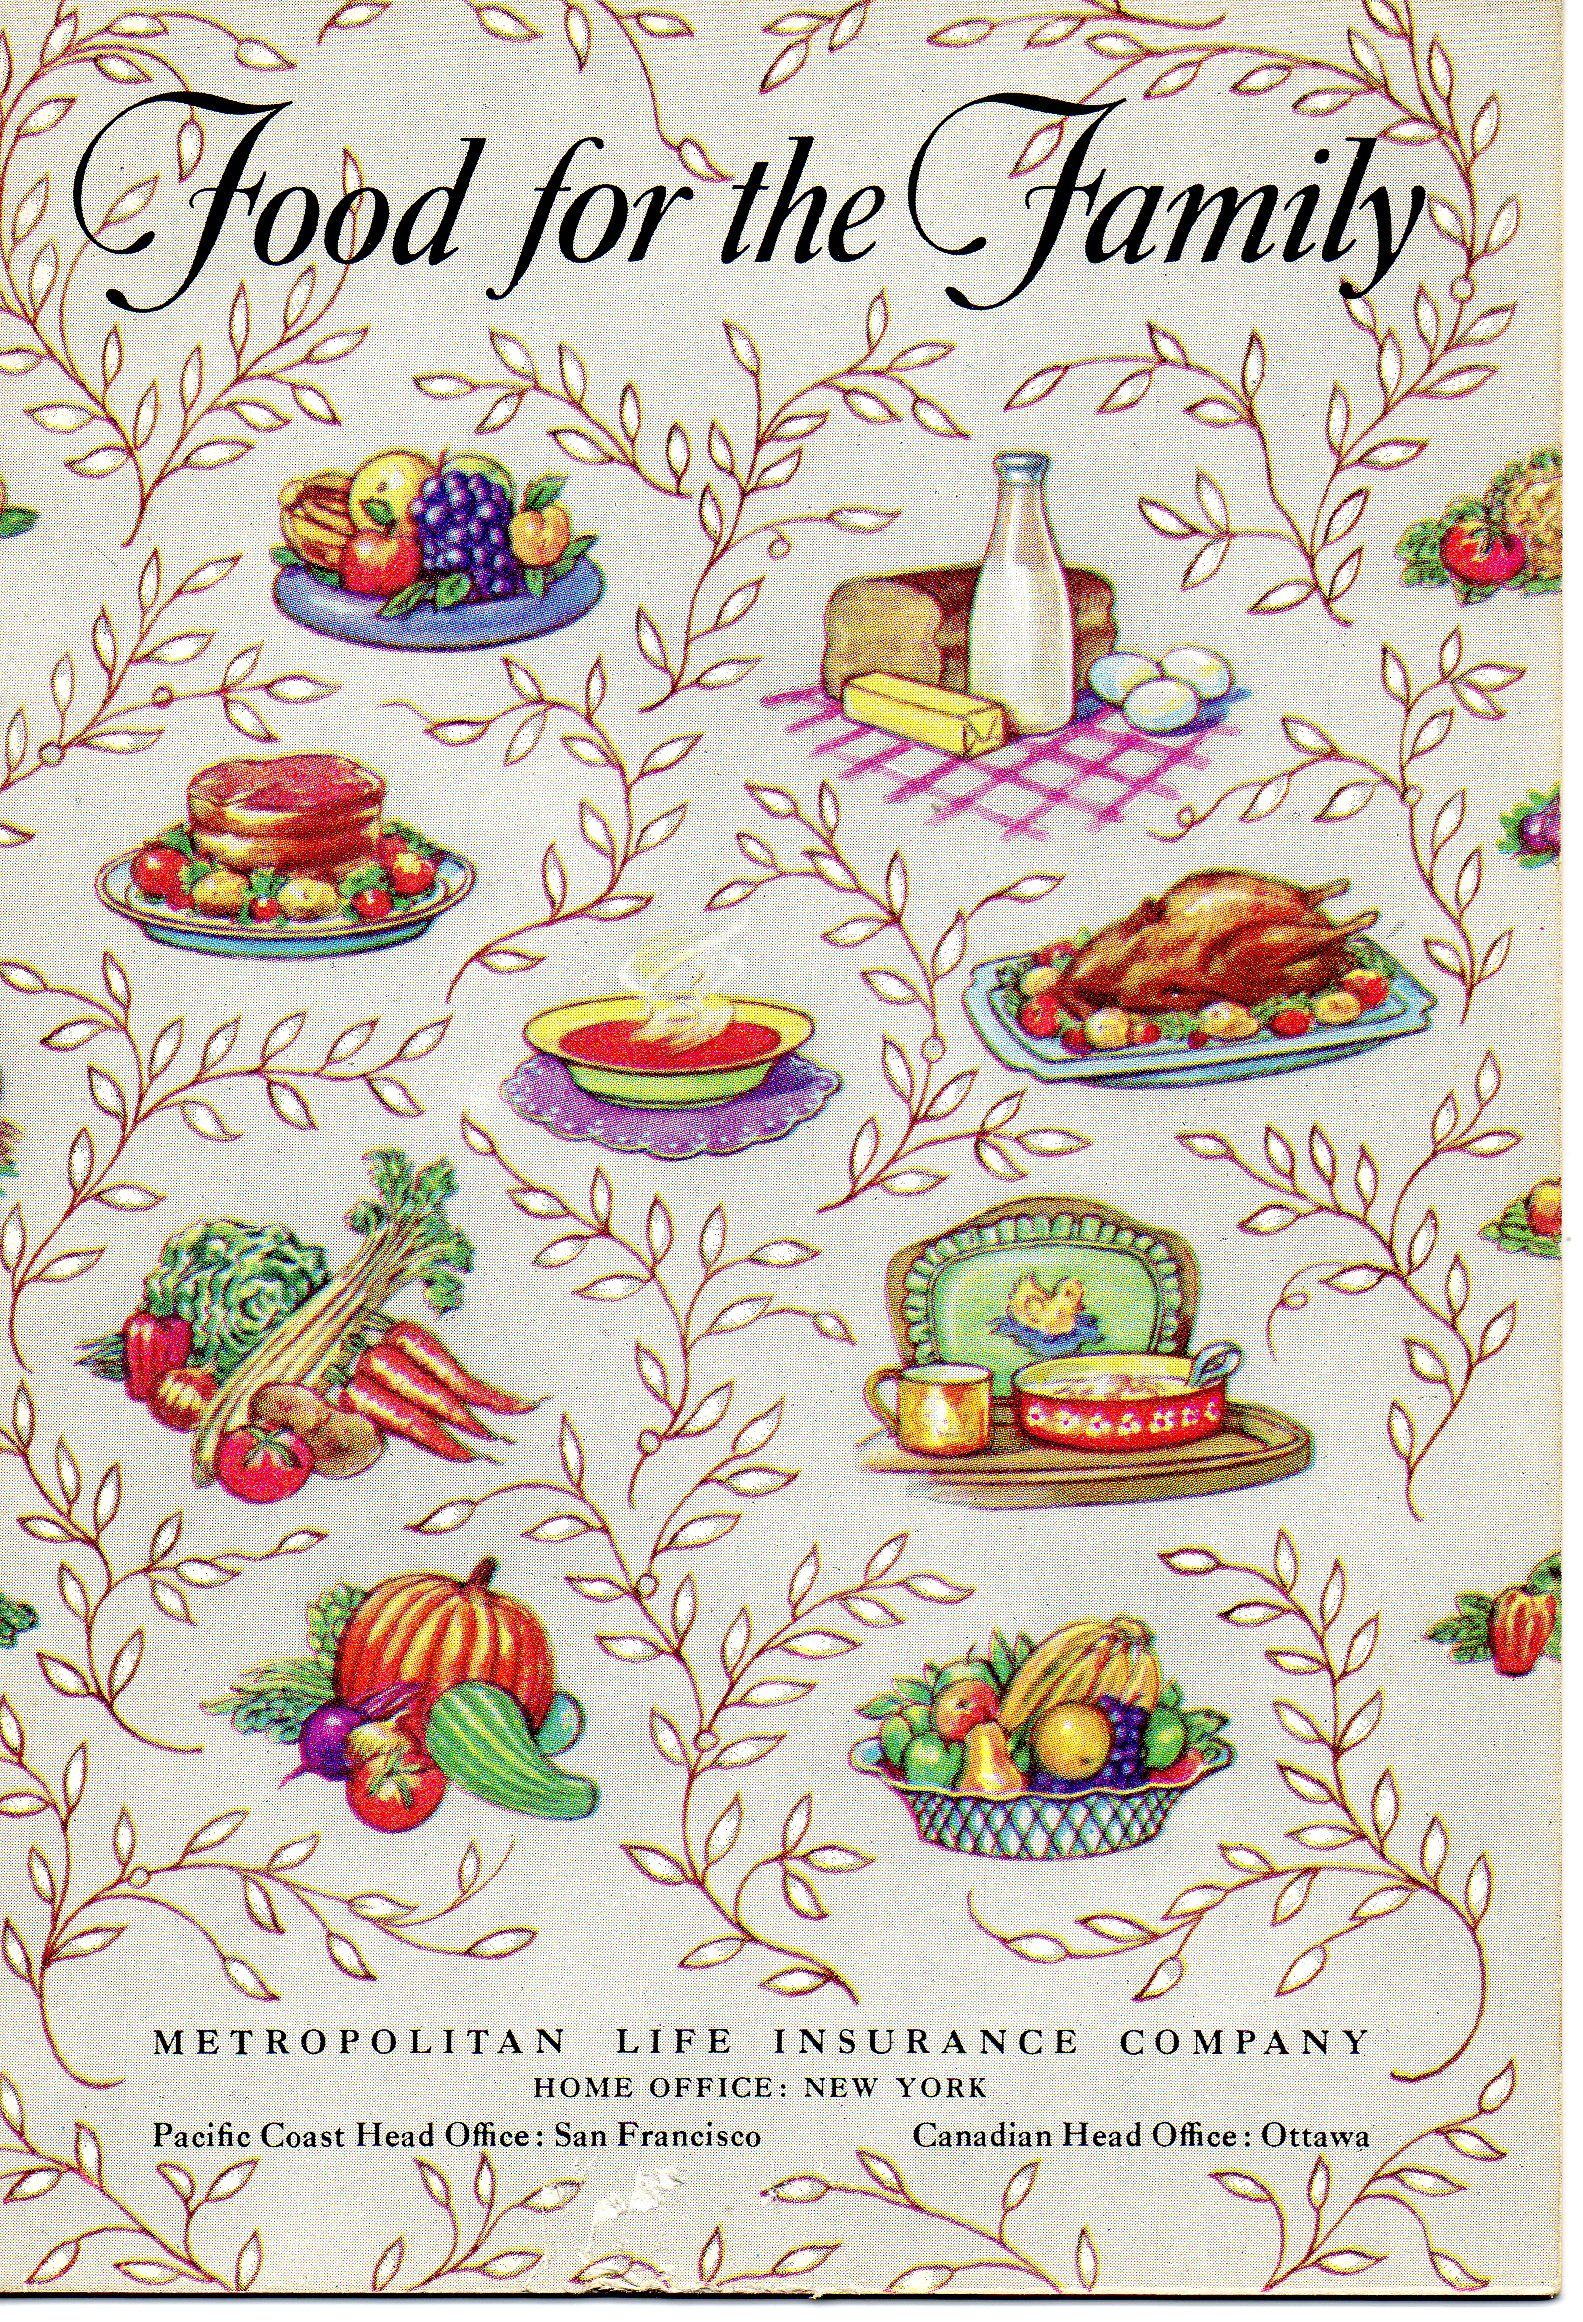 Food for the family 1954 metropolitanlife insurance